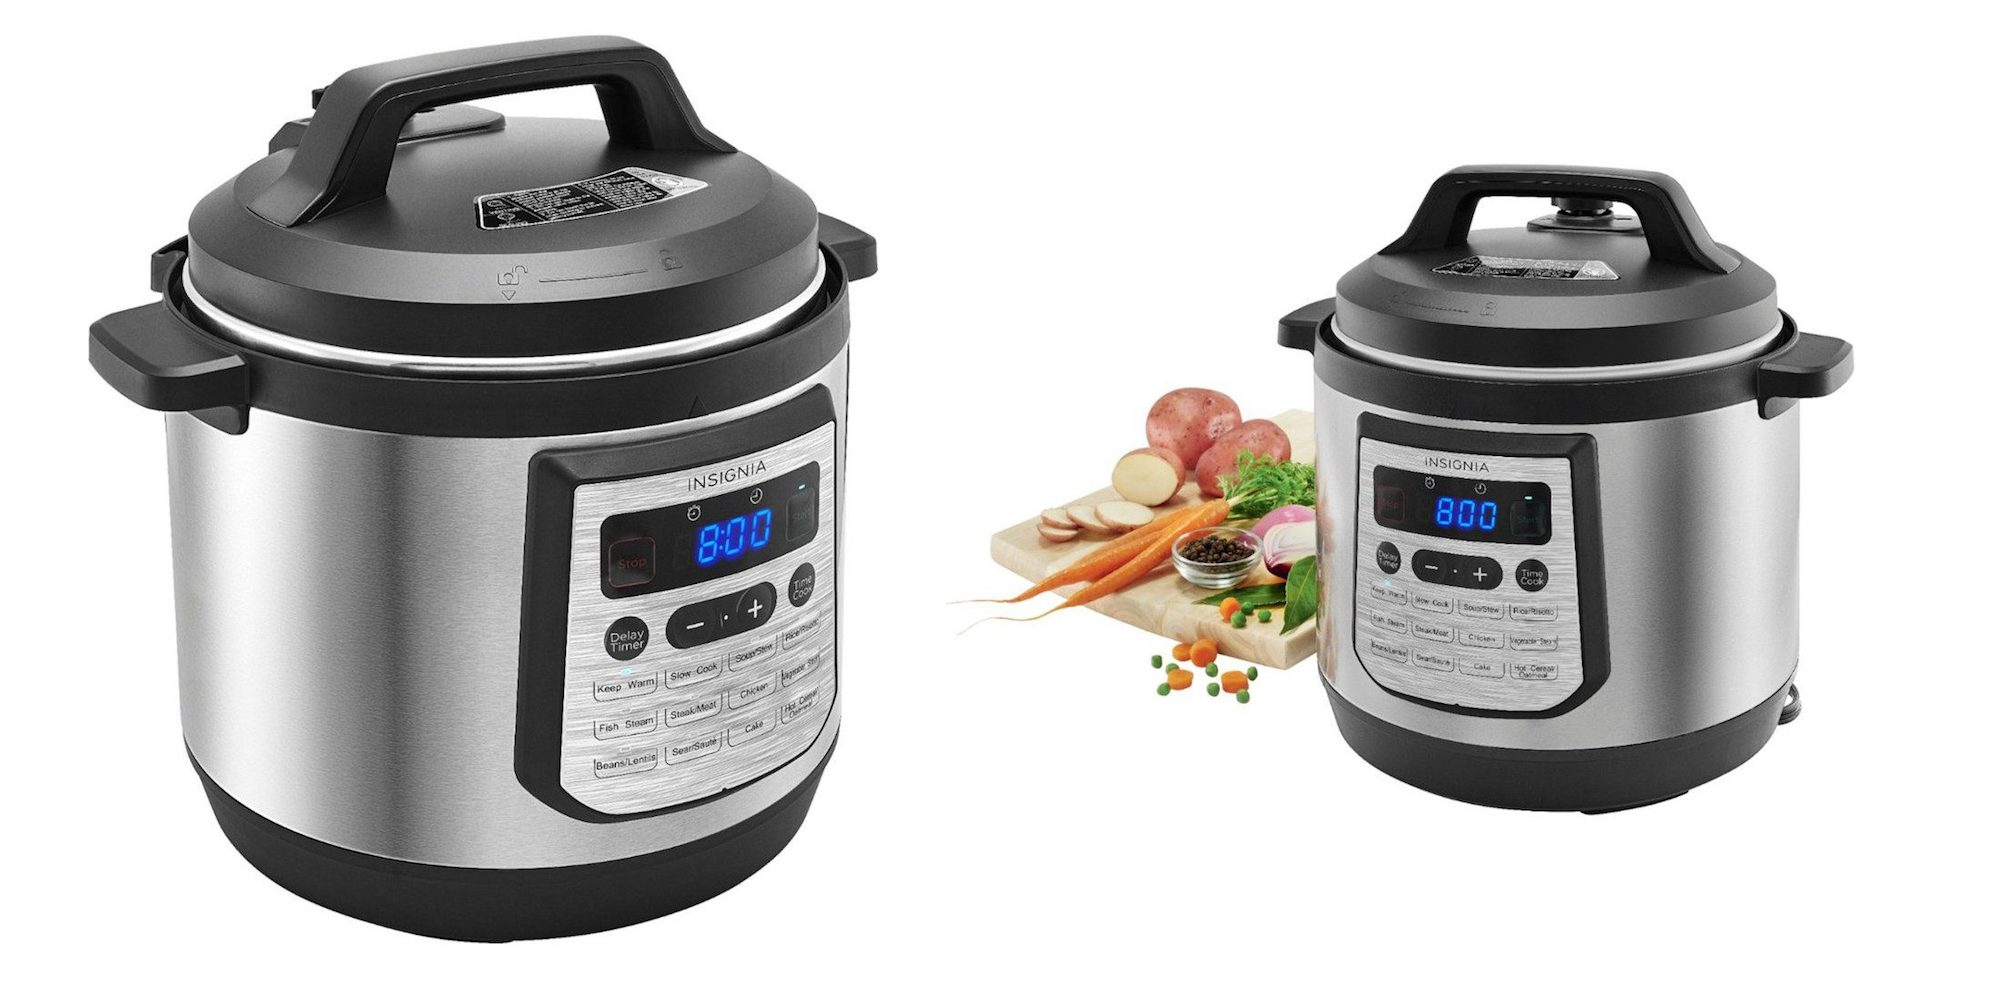 Big W Pressure Cooker Insignia S Big Boy 8 Quart Multi Function Pressure Cooker Is Just